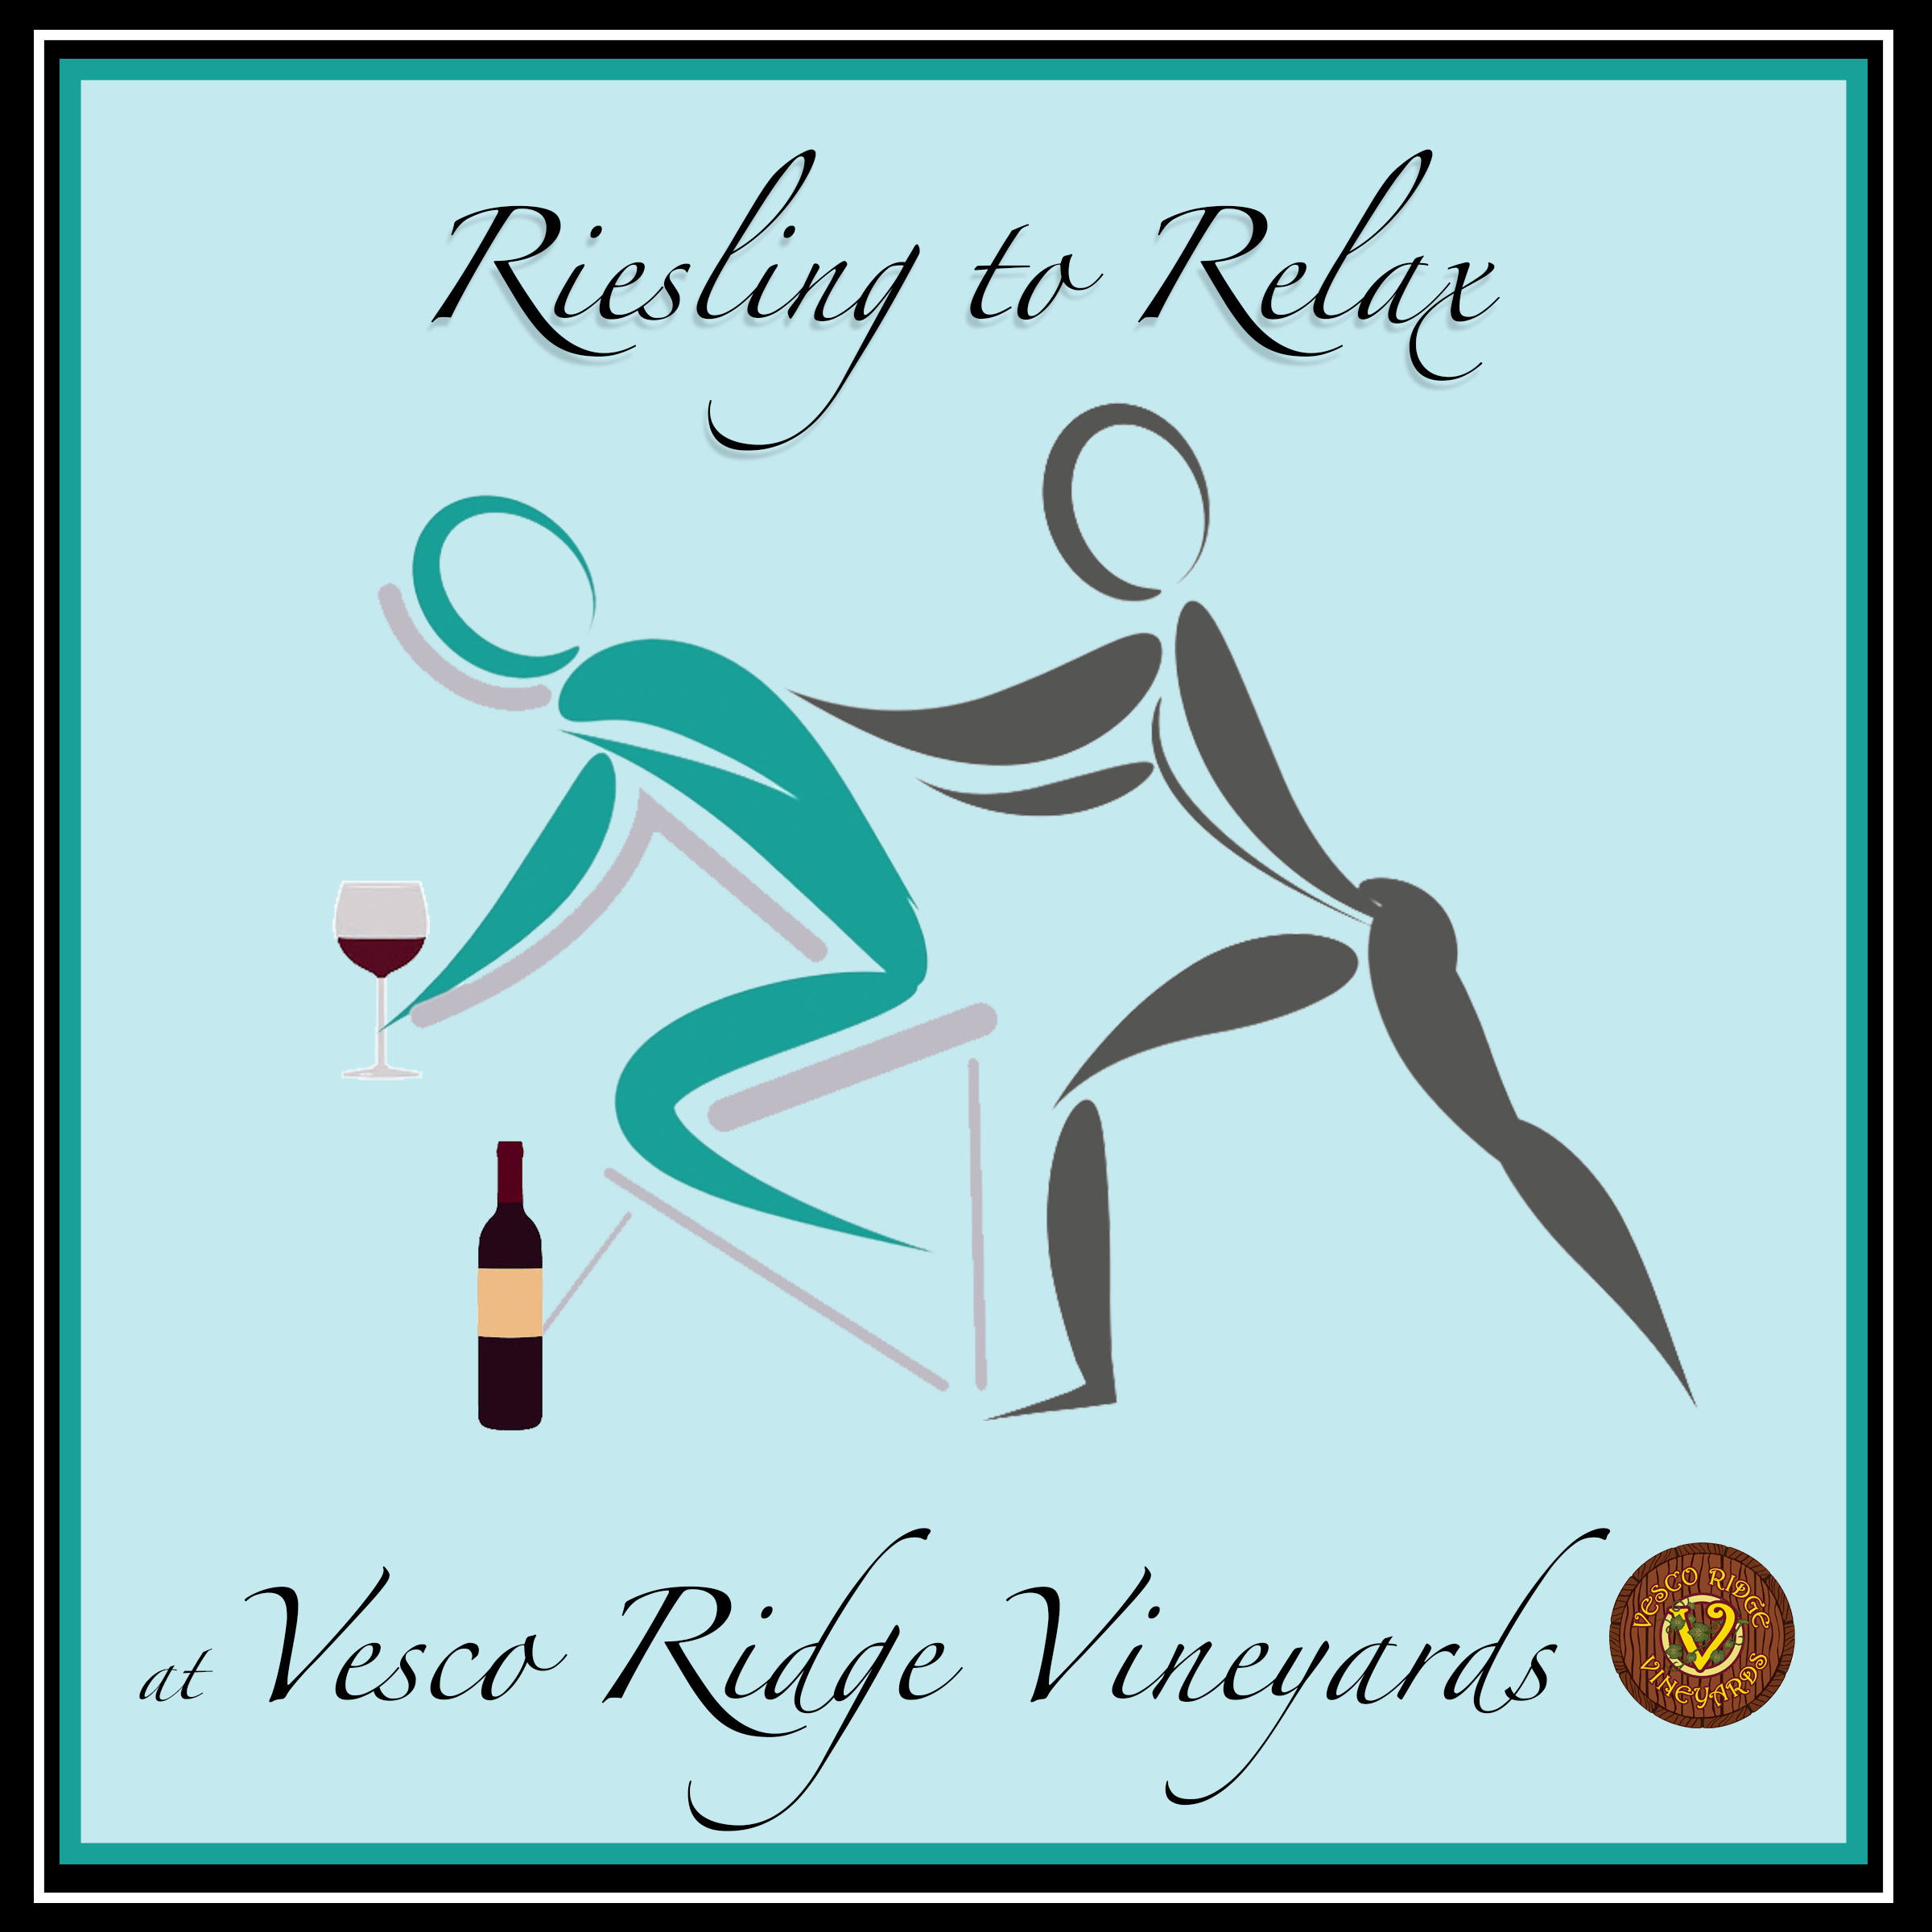 Riesling to Relax